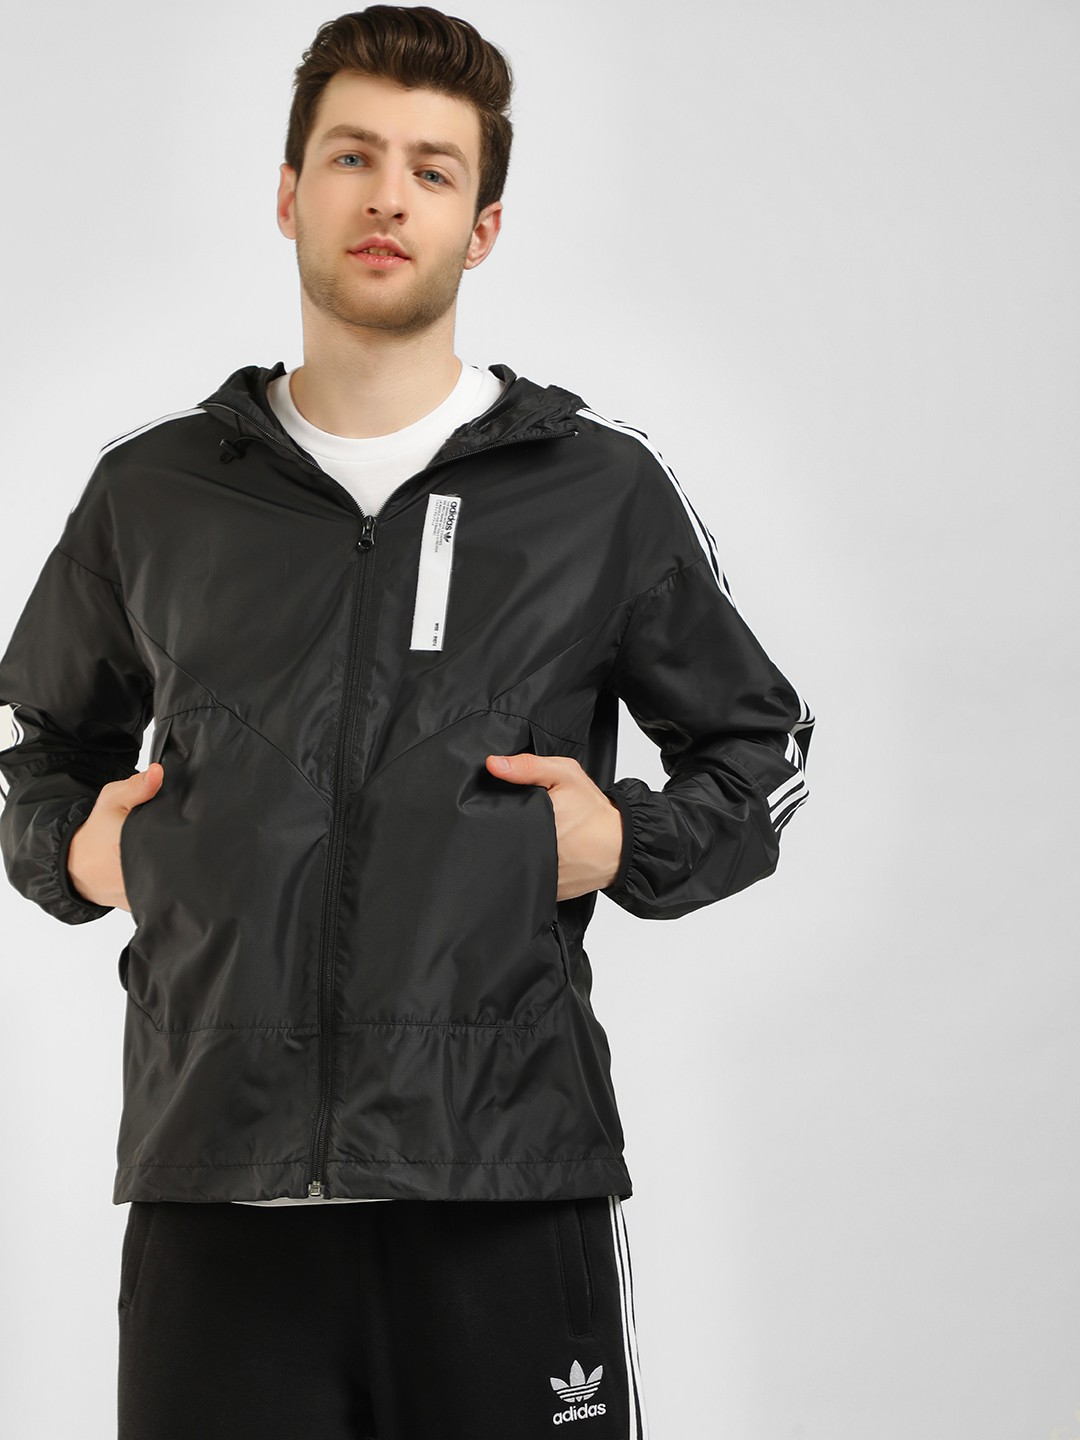 Adidas Originals Black Nmd Karkaj Windbreaker 1